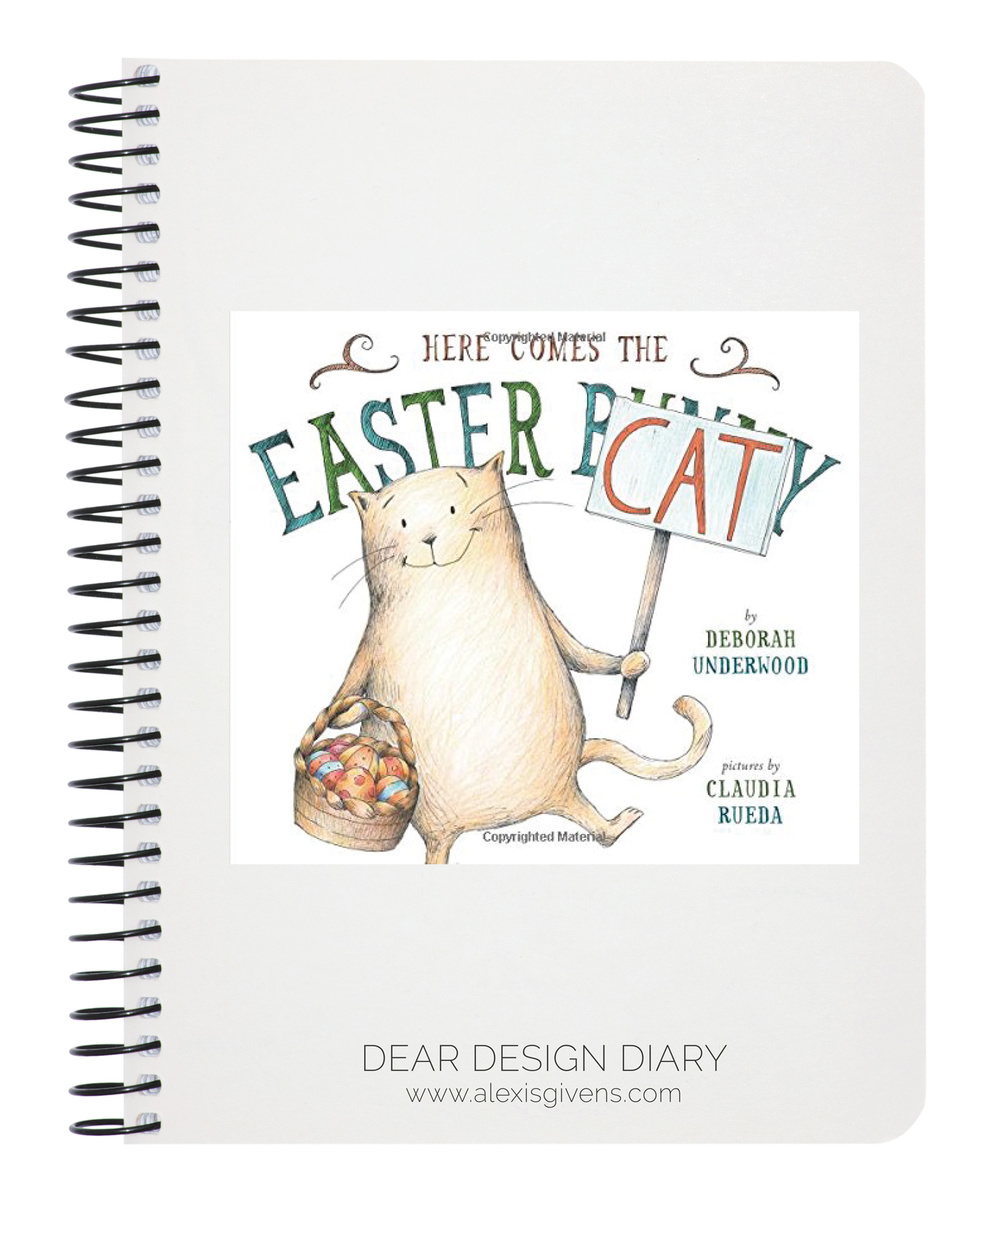 Here Comes the Easter Cat by Deborah Underwood,  amazon.com , $12.75